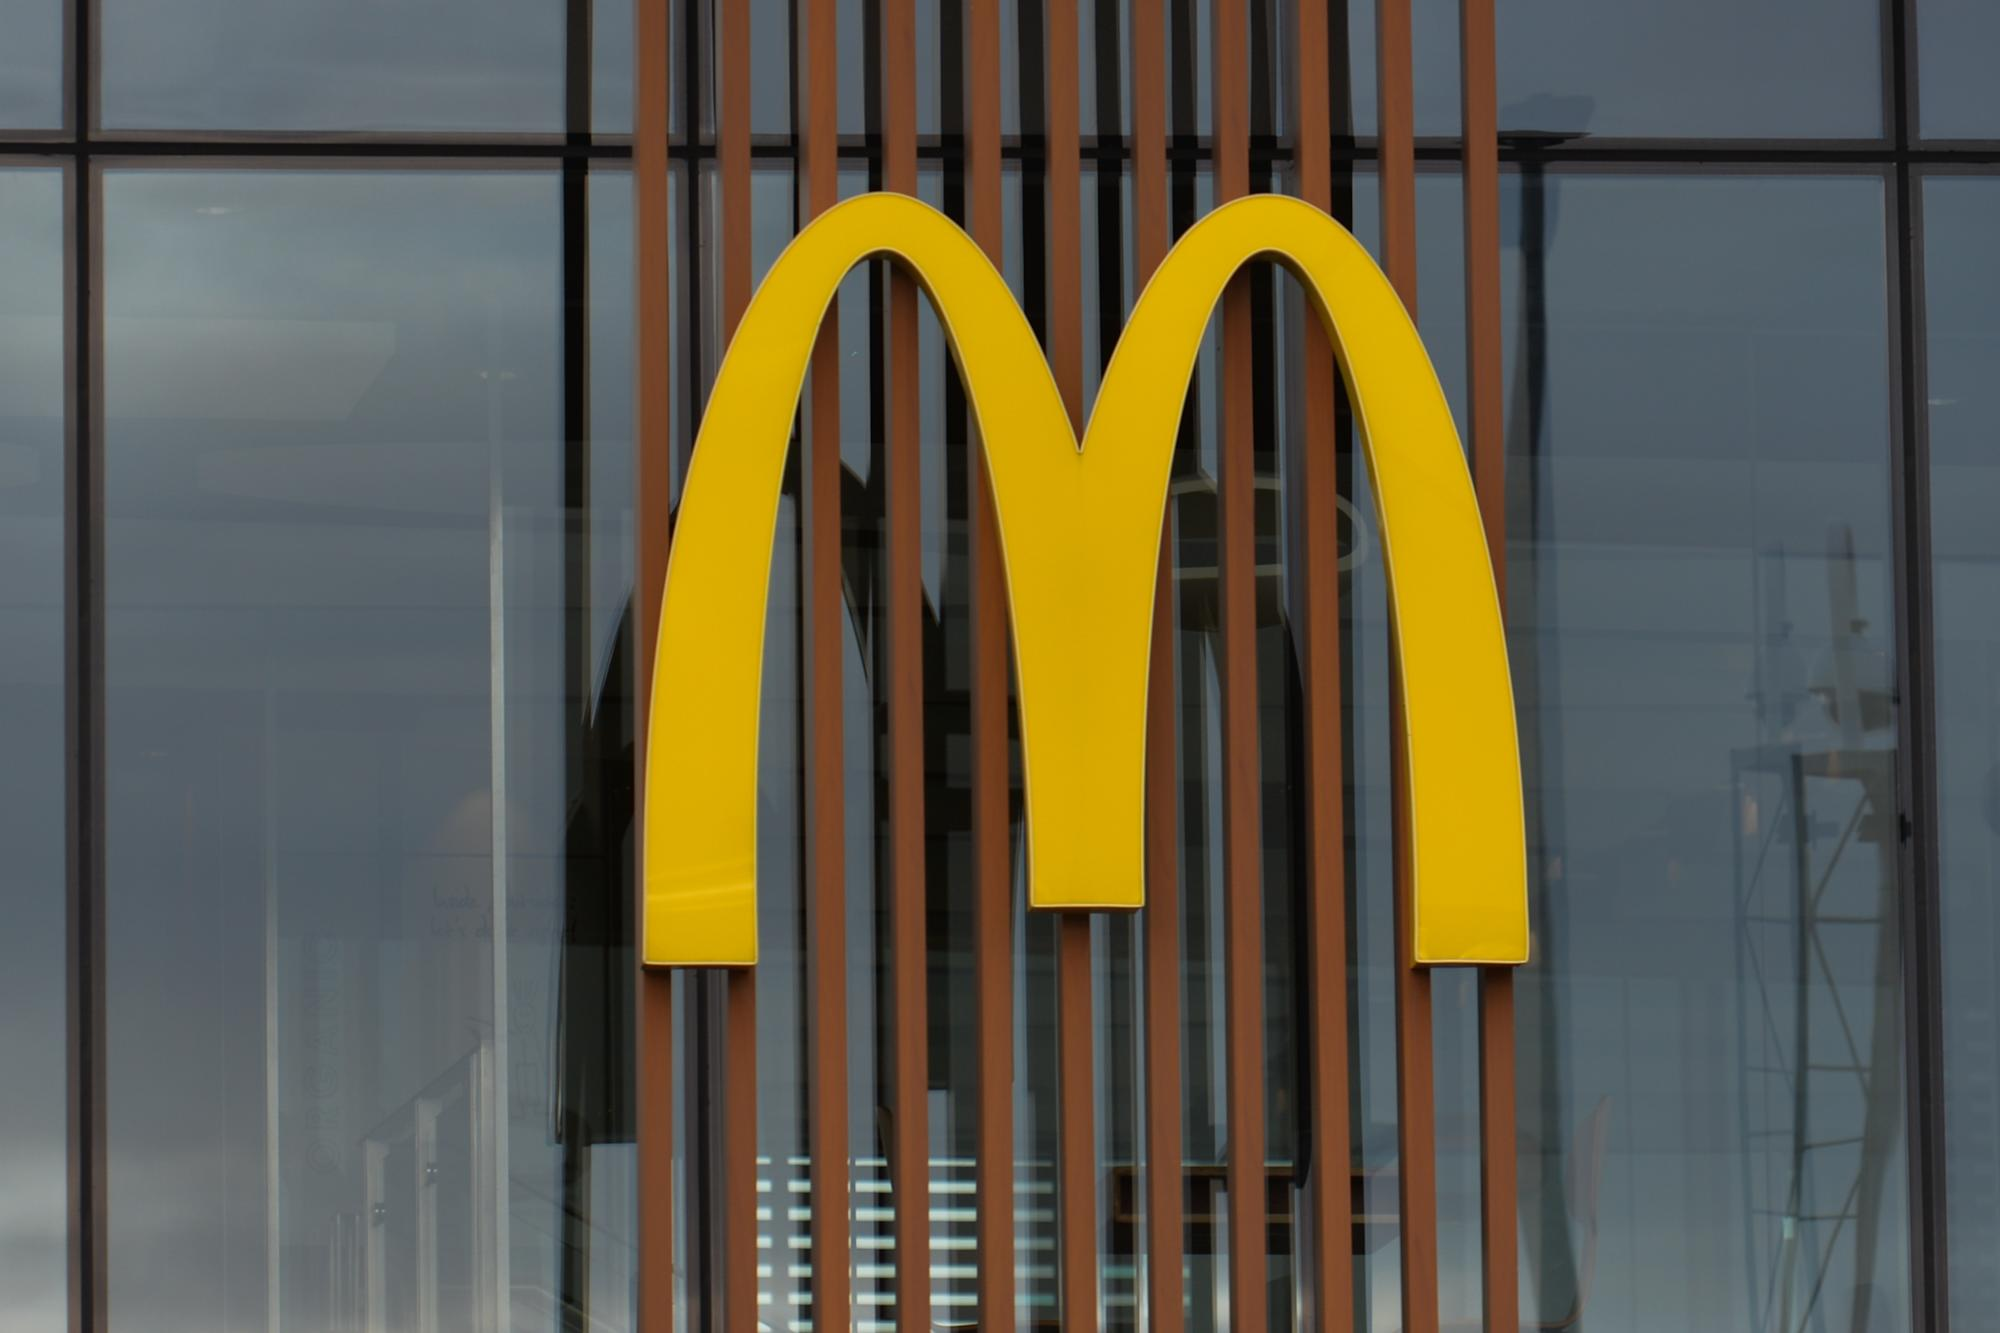 McDonald's misses Q4 earnings expectations, but sales boosted by menu, mobile